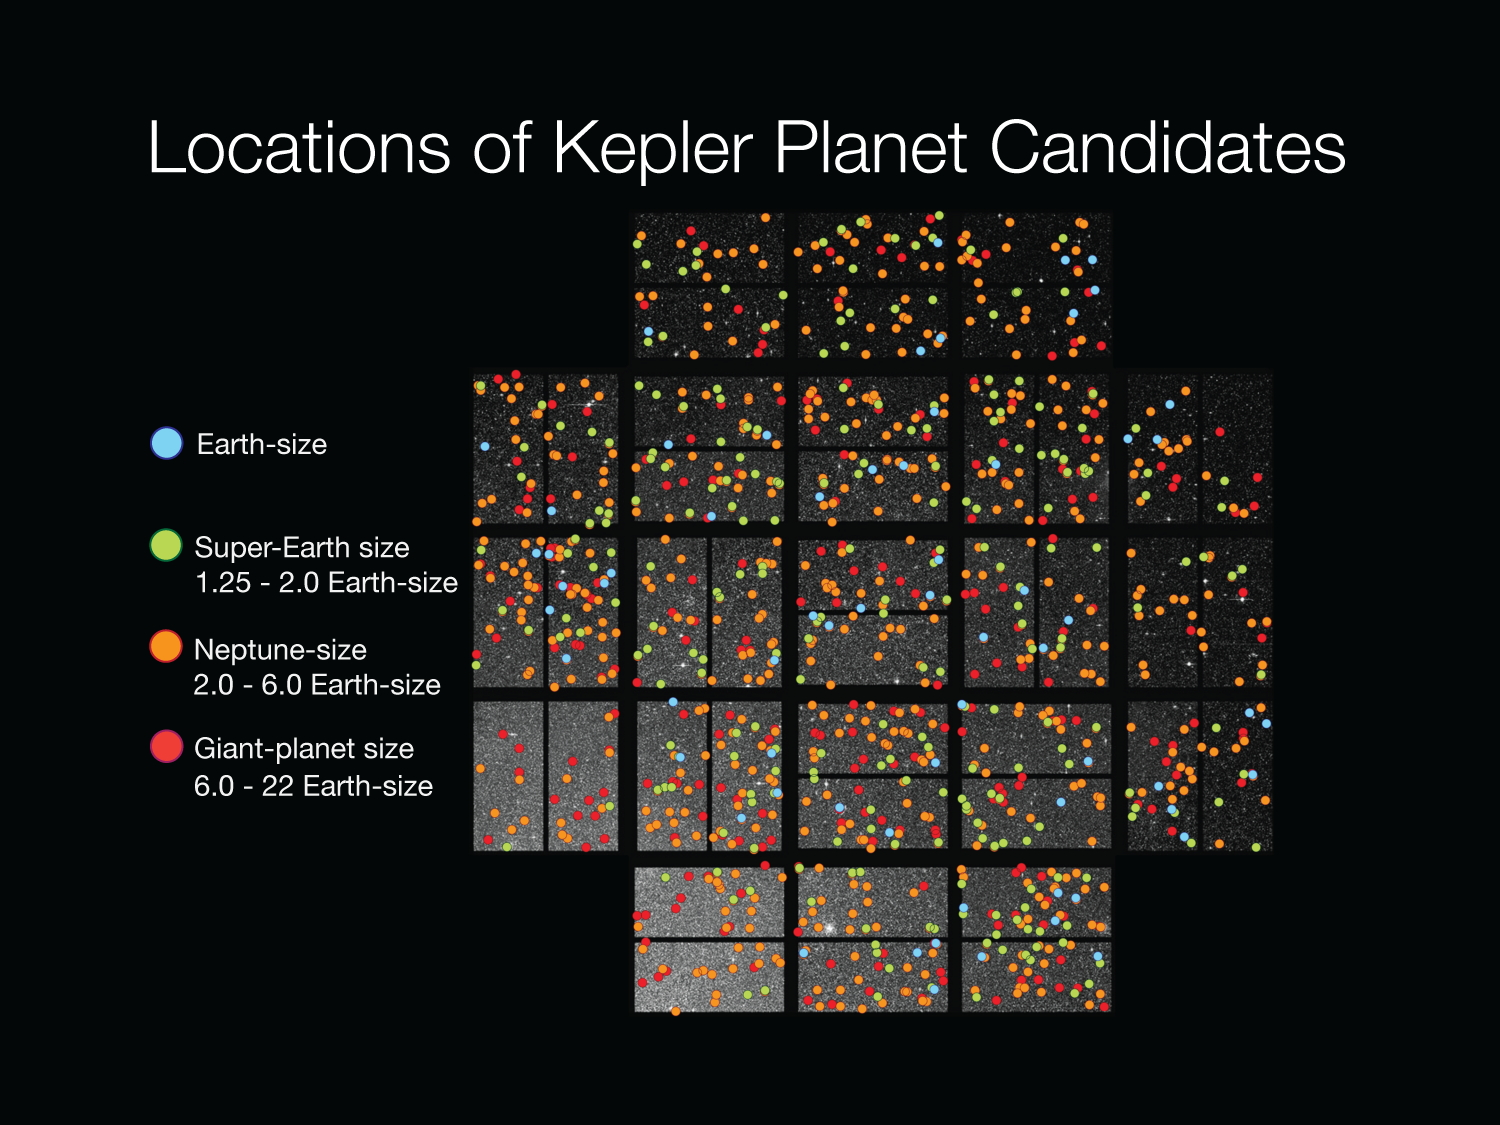 NASA Finds Earthsize Planet Candidates In The Habitable Zone NASA - Map of all planets